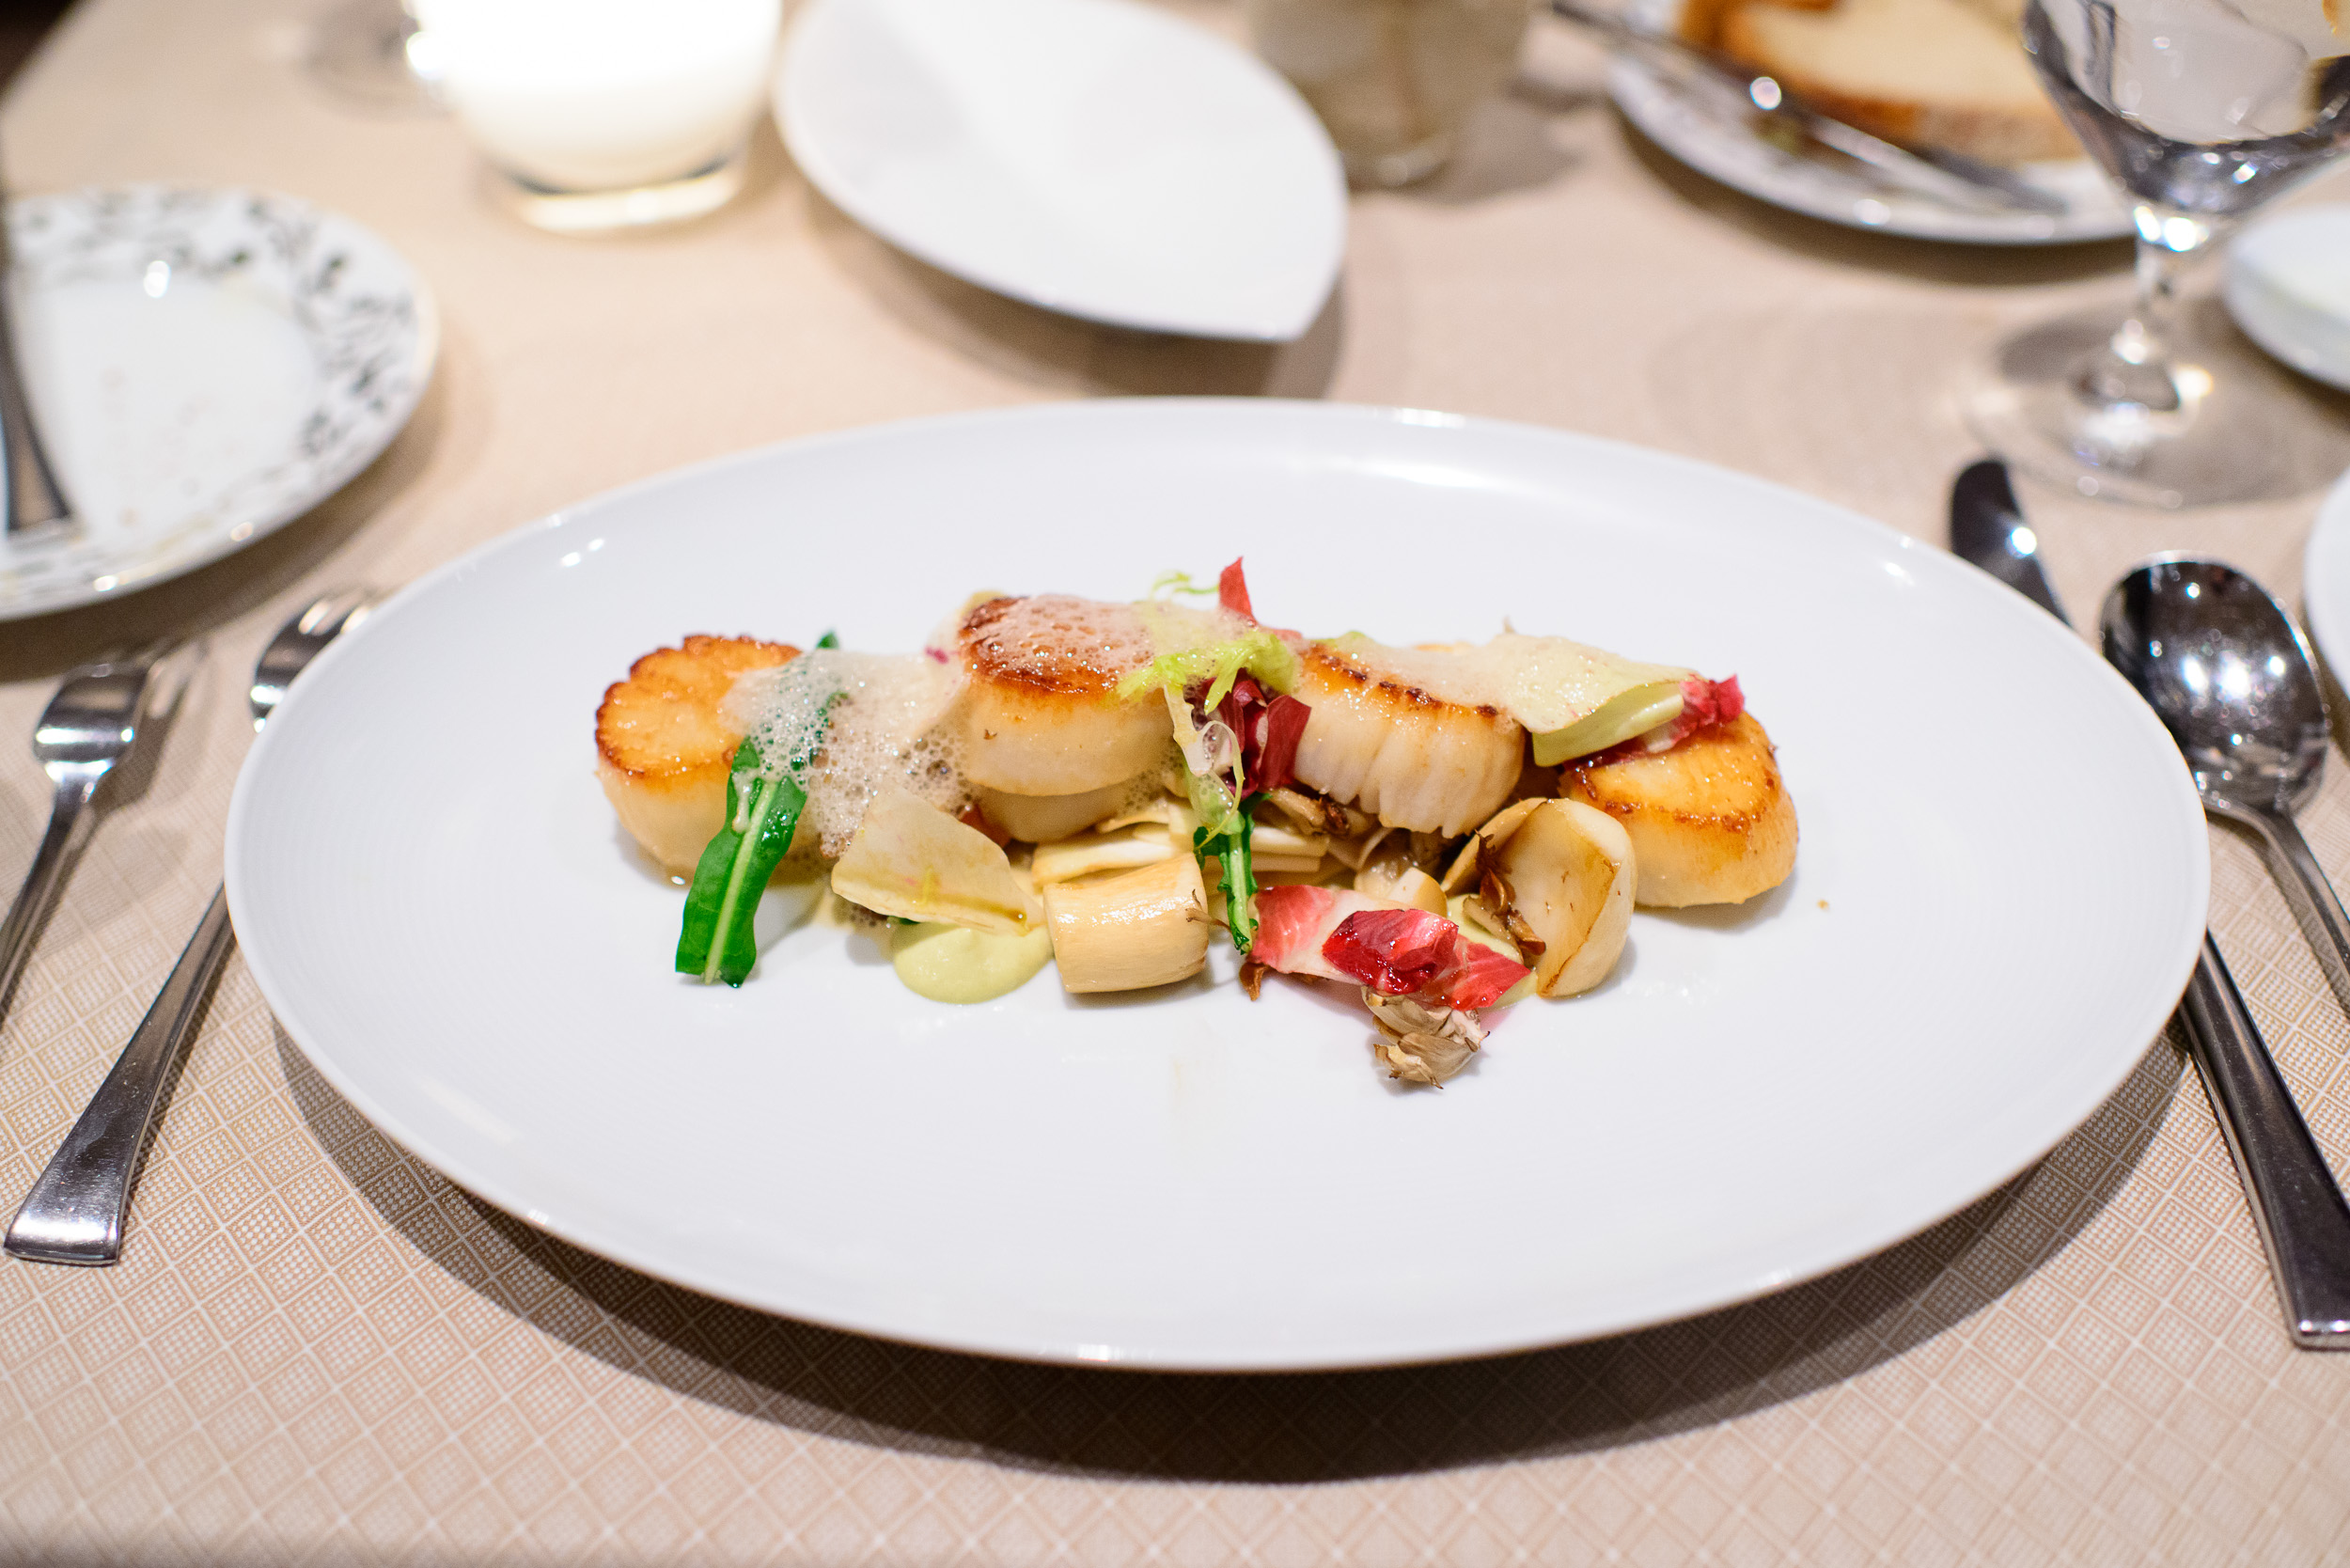 Capesante - pan seared sea scallops, hedgehogs, hen of the woods